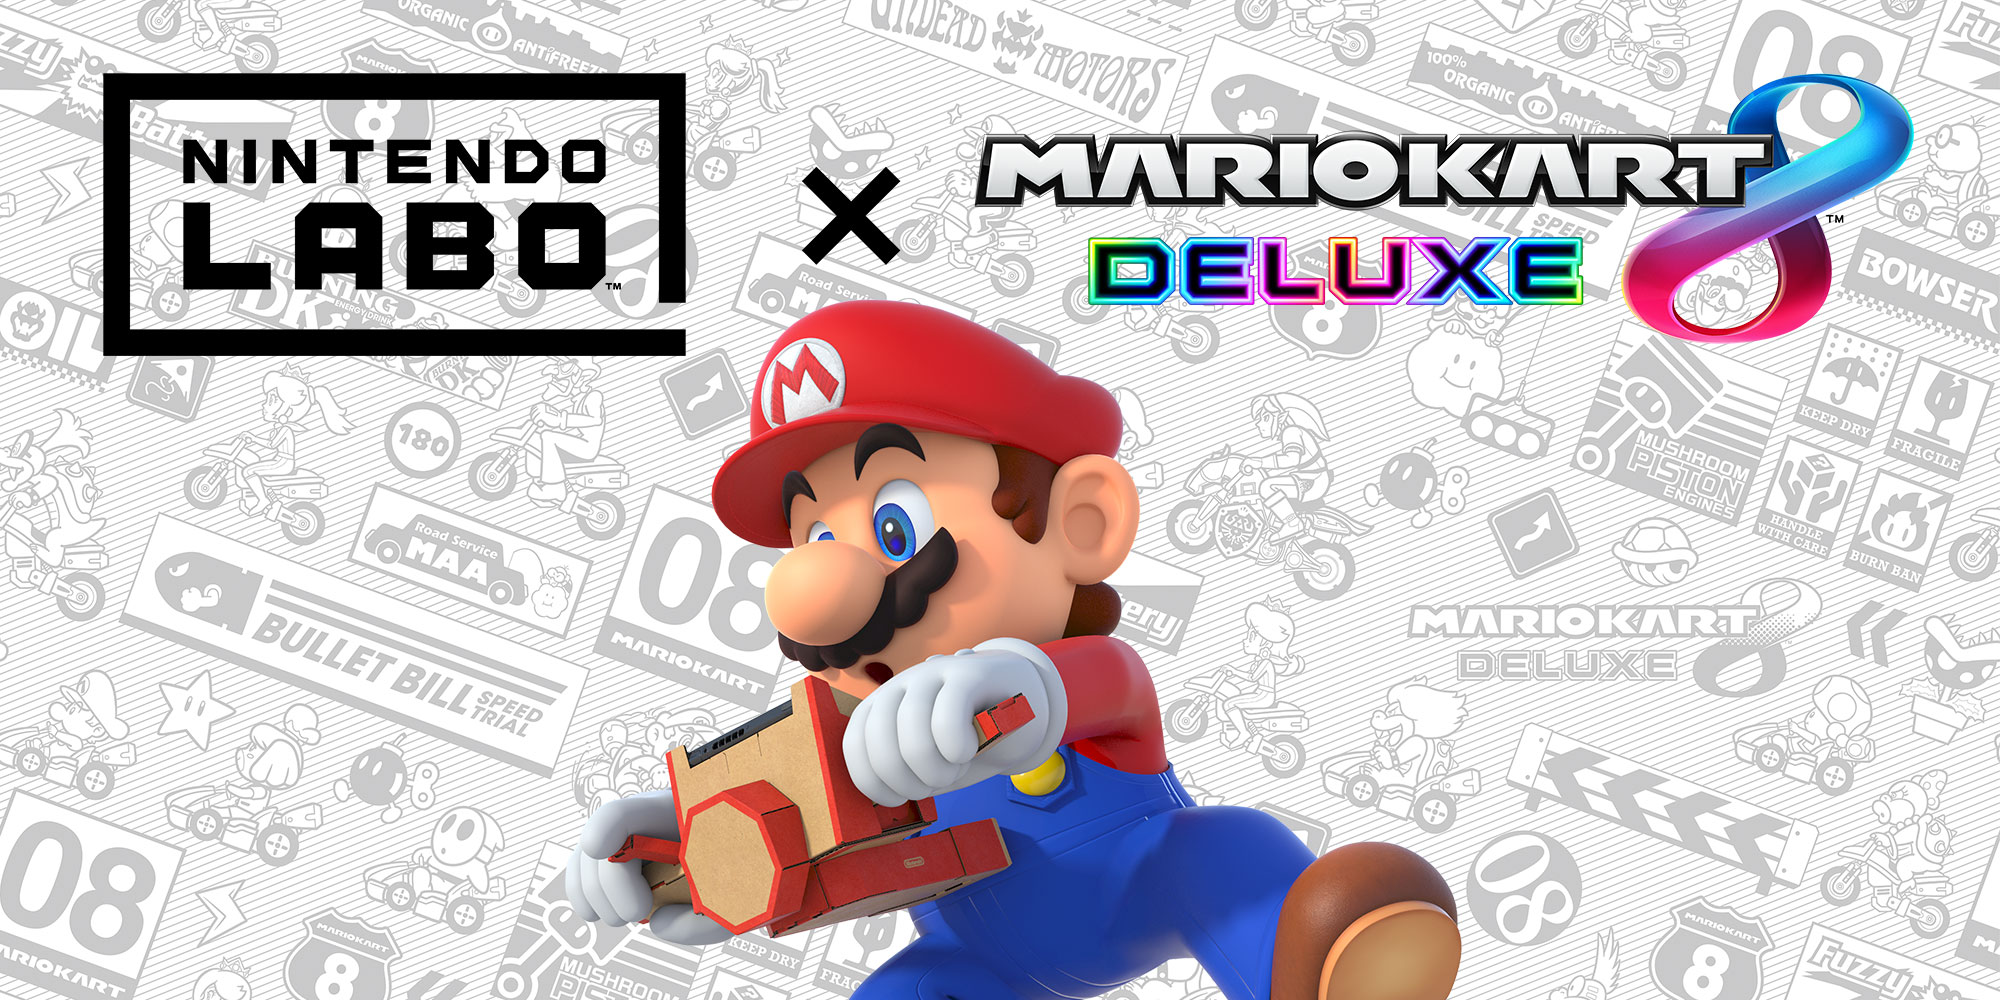 Discover a new way to play Mario Kart 8 Deluxe with Nintendo Labo!